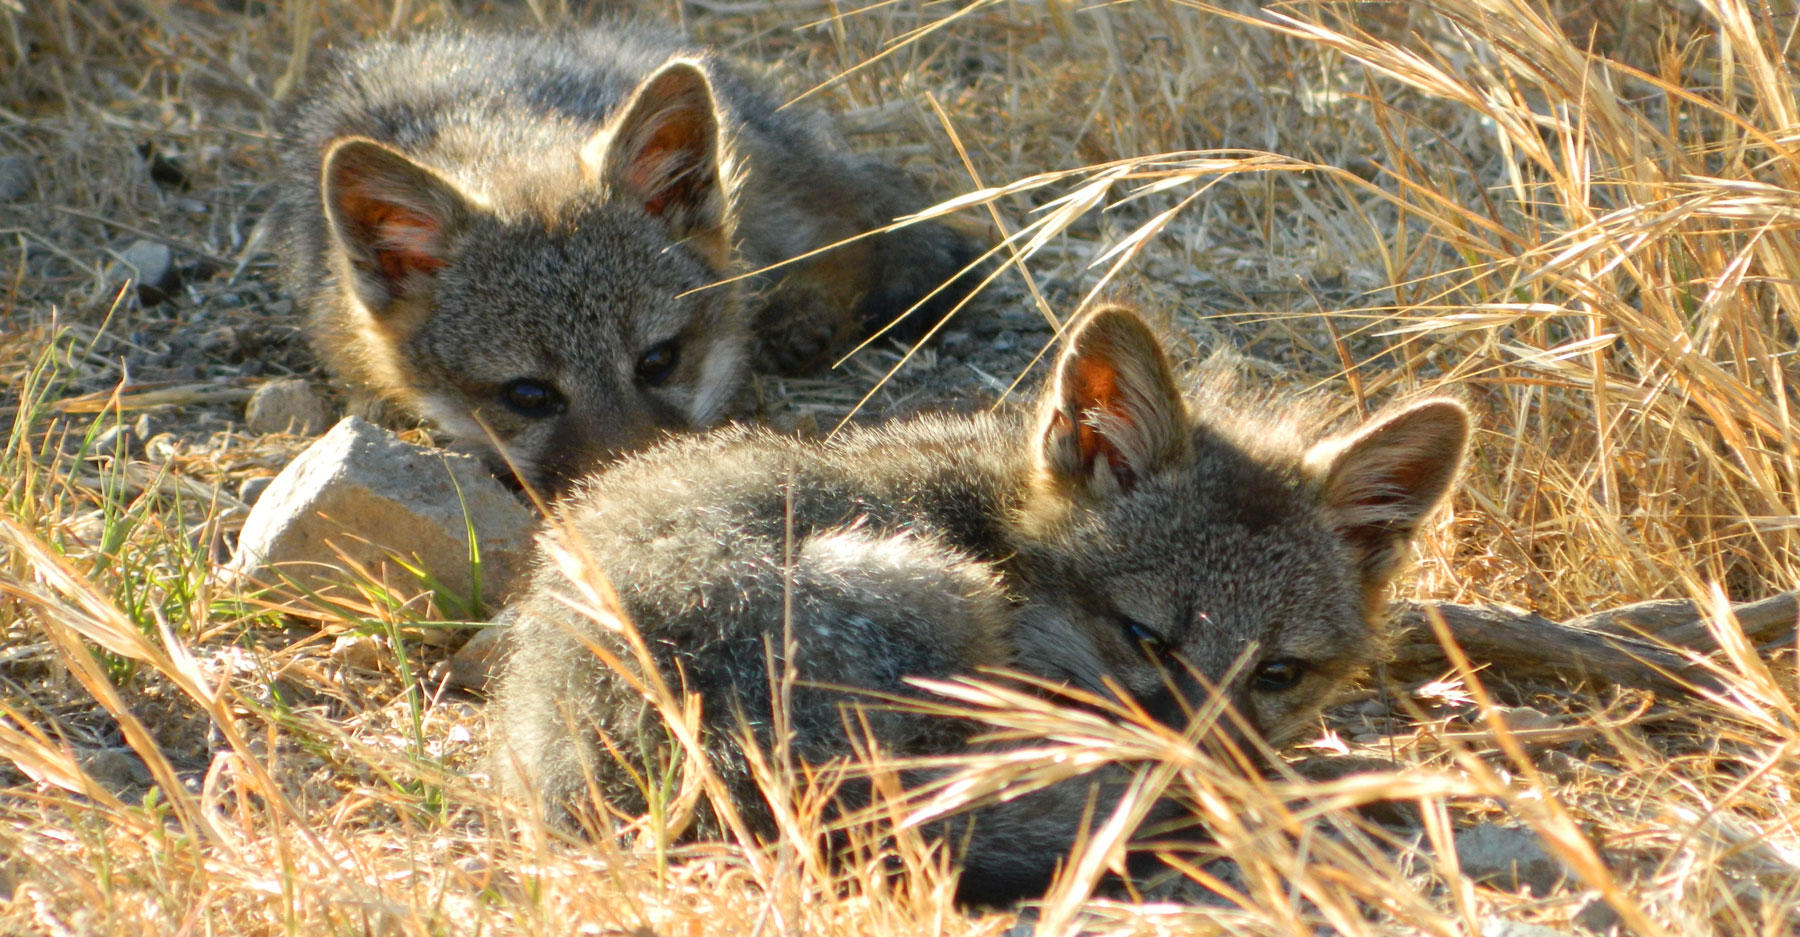 Catalina Island foxes